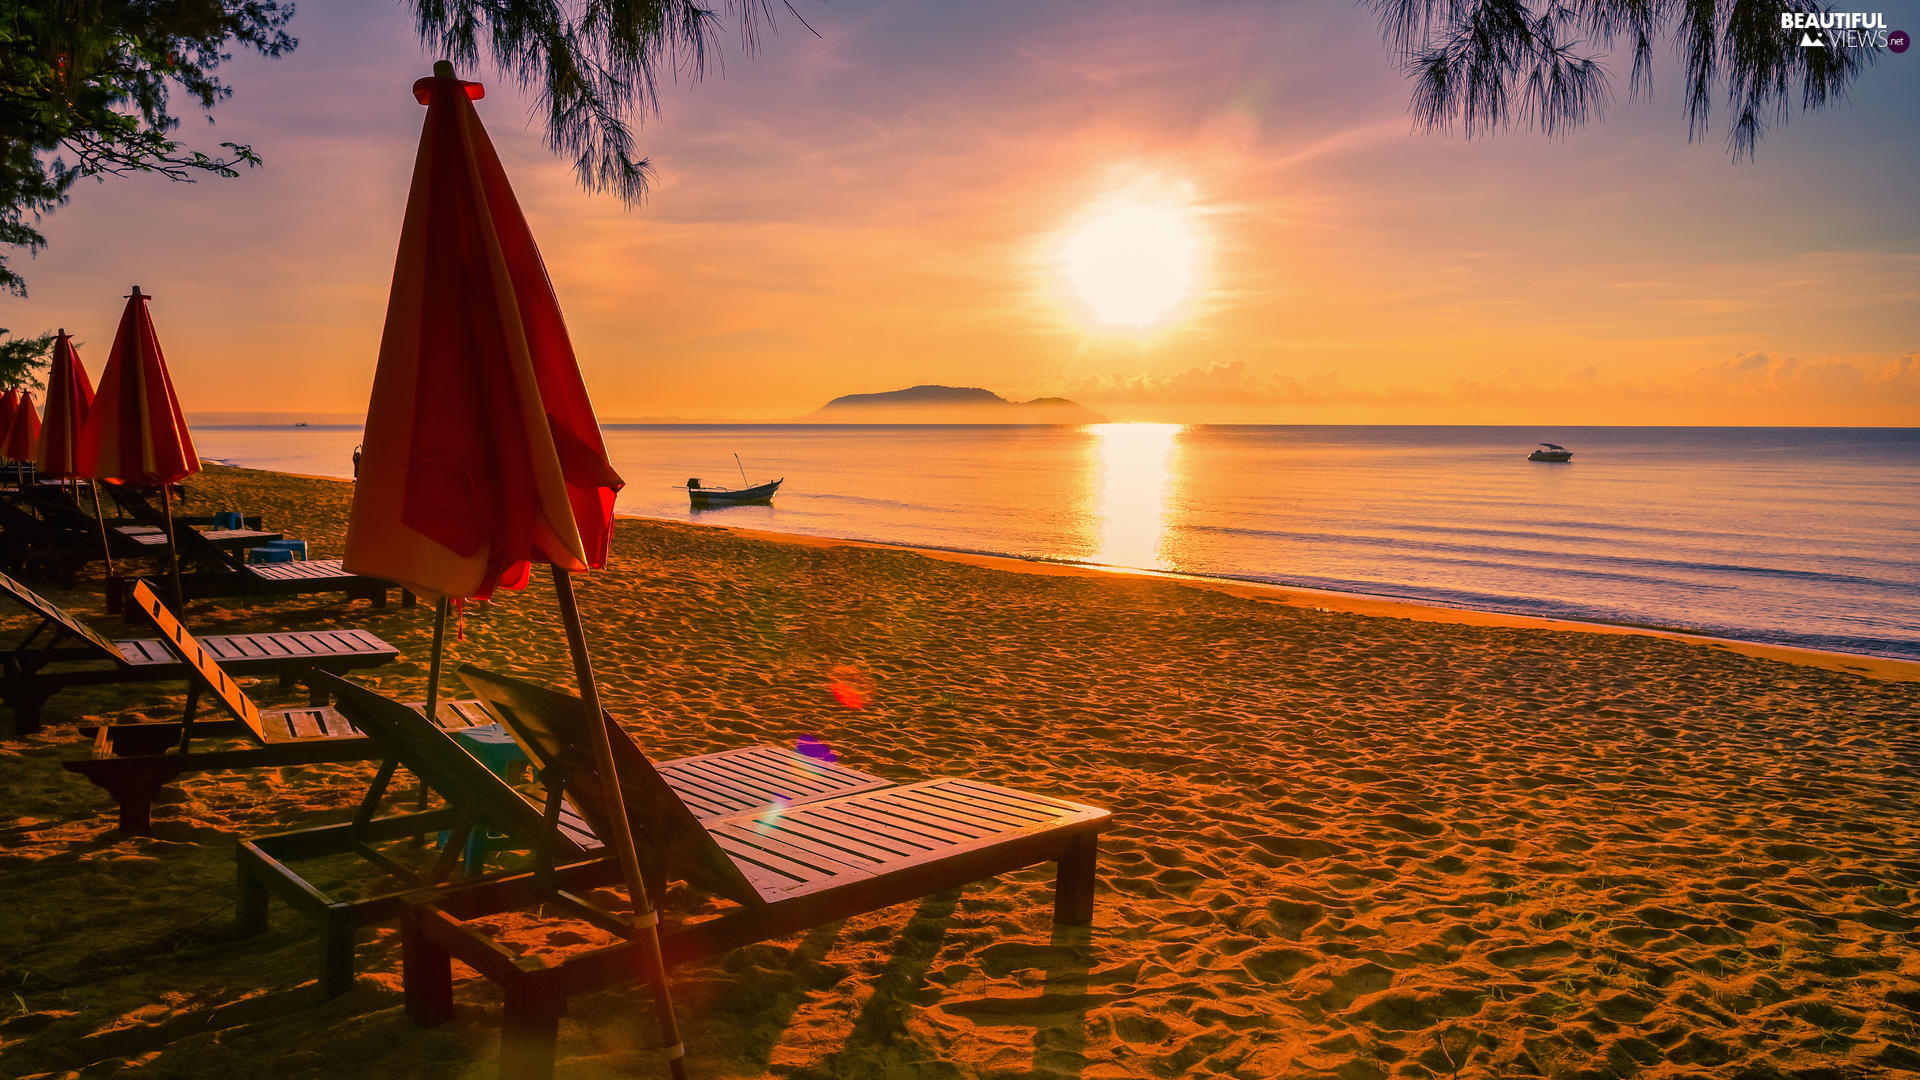 Great Sunsets, sea, boats, Sunshade, deck chair, Beaches